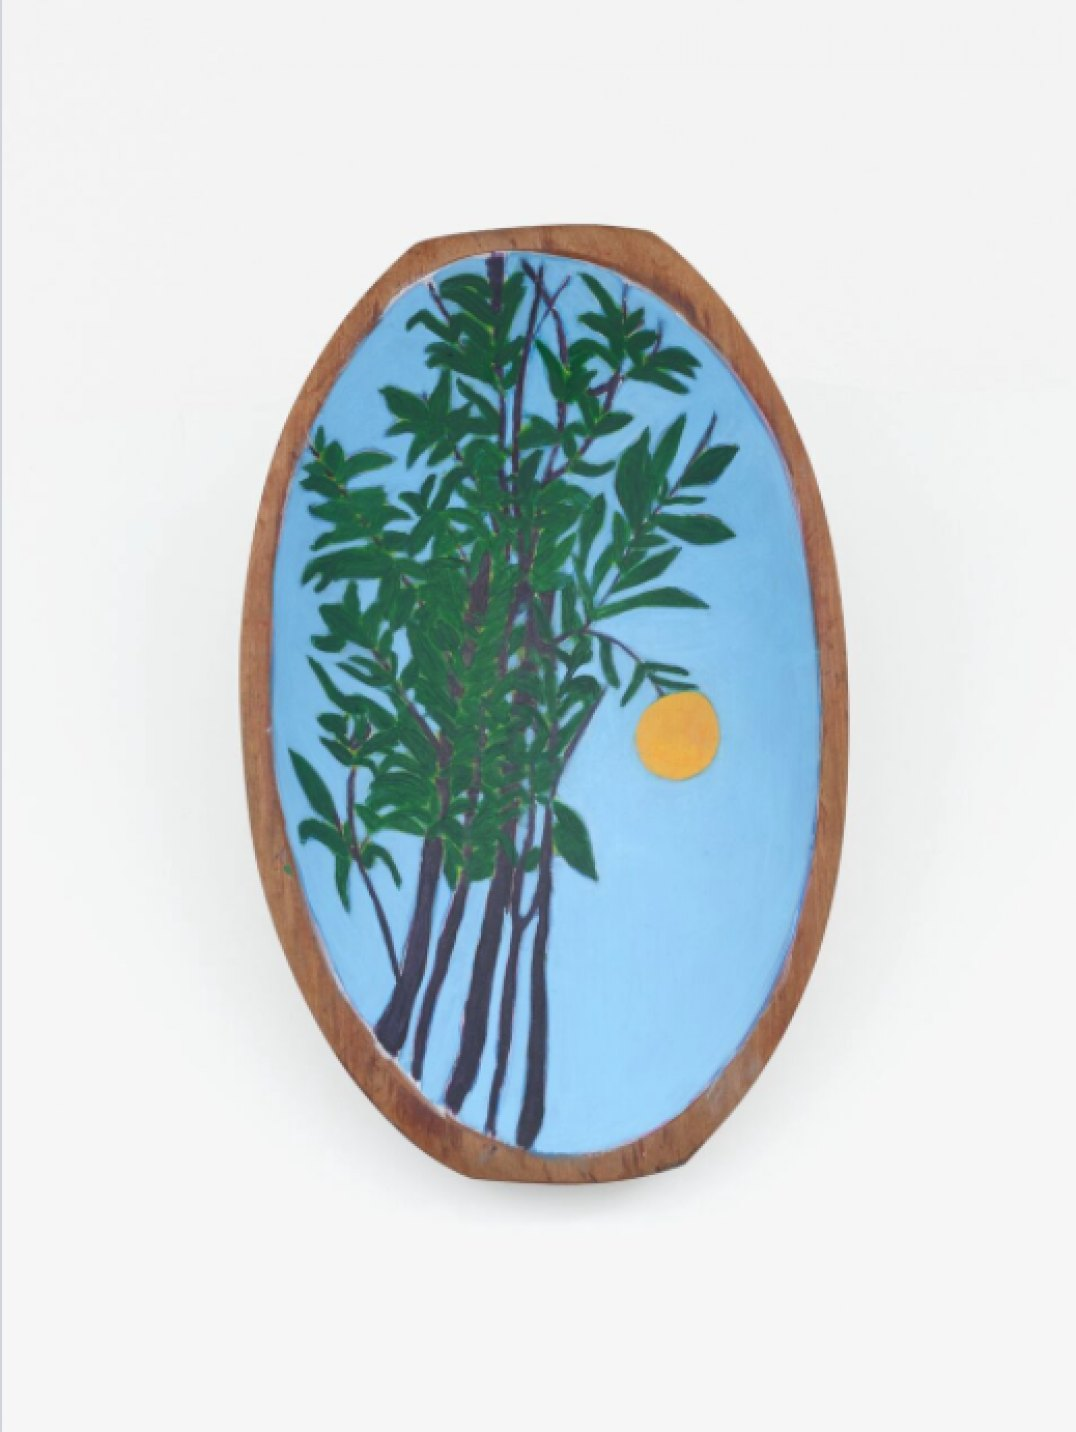 Patricia Leite,&nbsp;<em>Laranjeira,</em> 2017, oil on wood, 33 × 21 cm - Mendes Wood DM